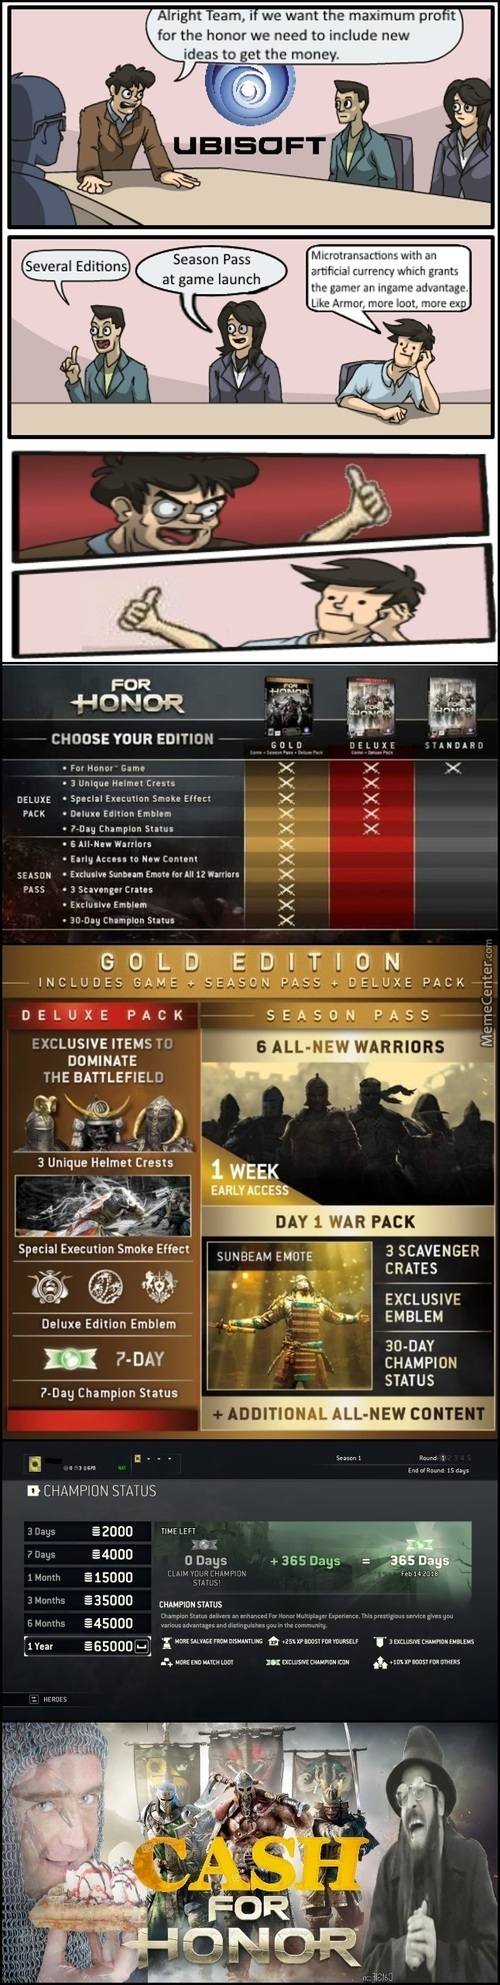 New Games Experience - Cash For Honor